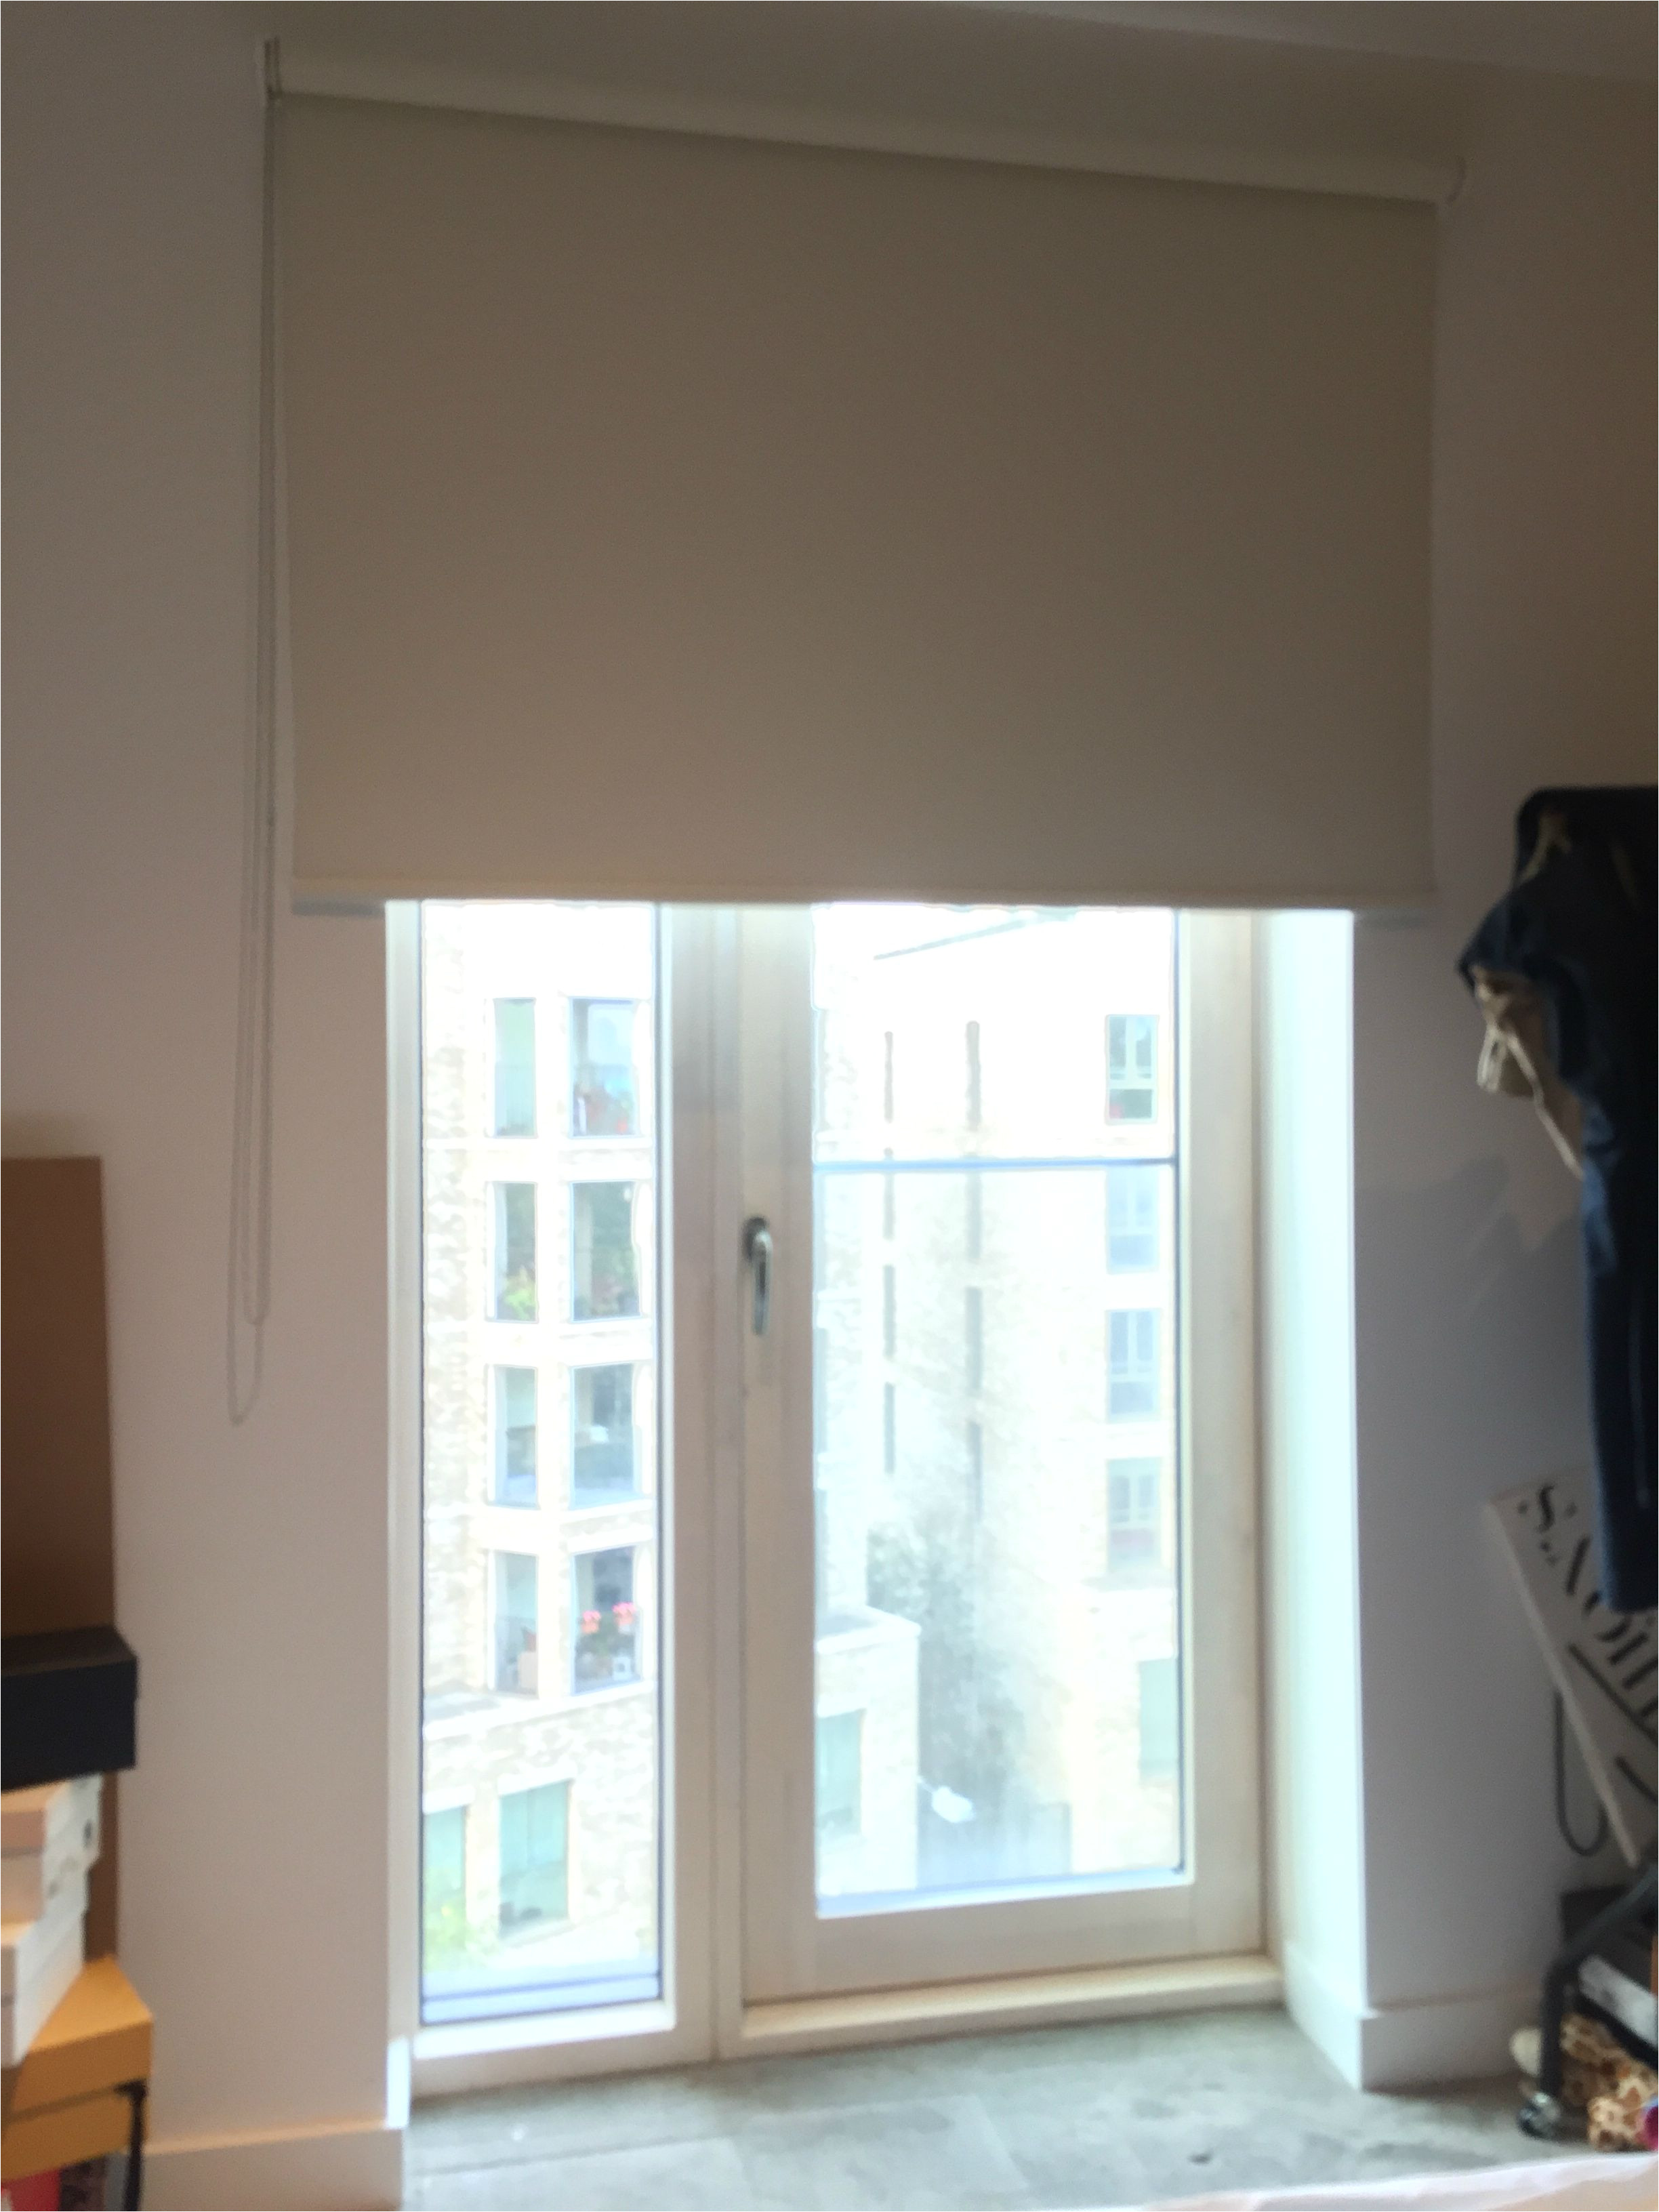 Motorized Blackout Shades with Side Channels Blackout Roller Blind Fitted to French Door to Apartment In Elephant